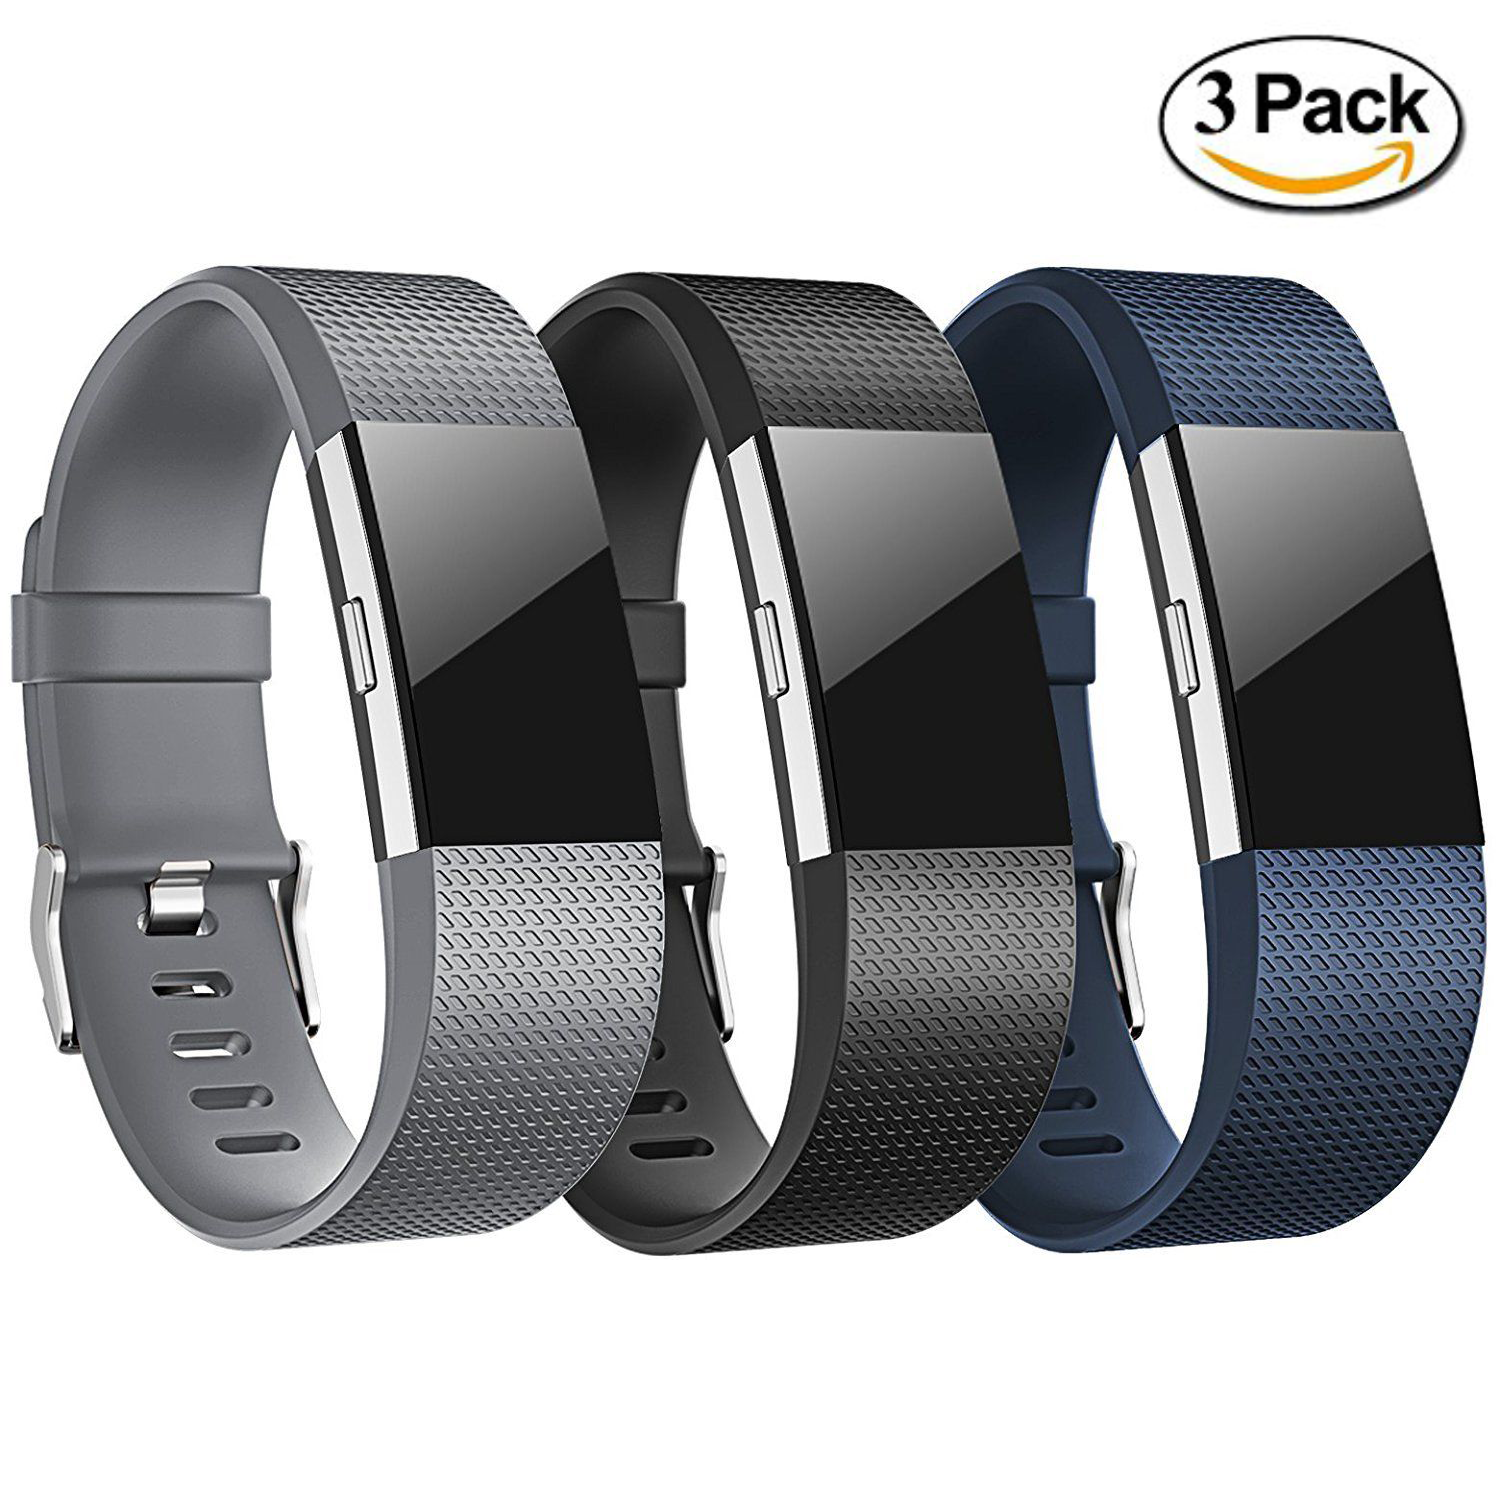 Details about 3 Pack Replacement Wristband For Fitbit Charge 2 Band  Silicone Fitness Large USA